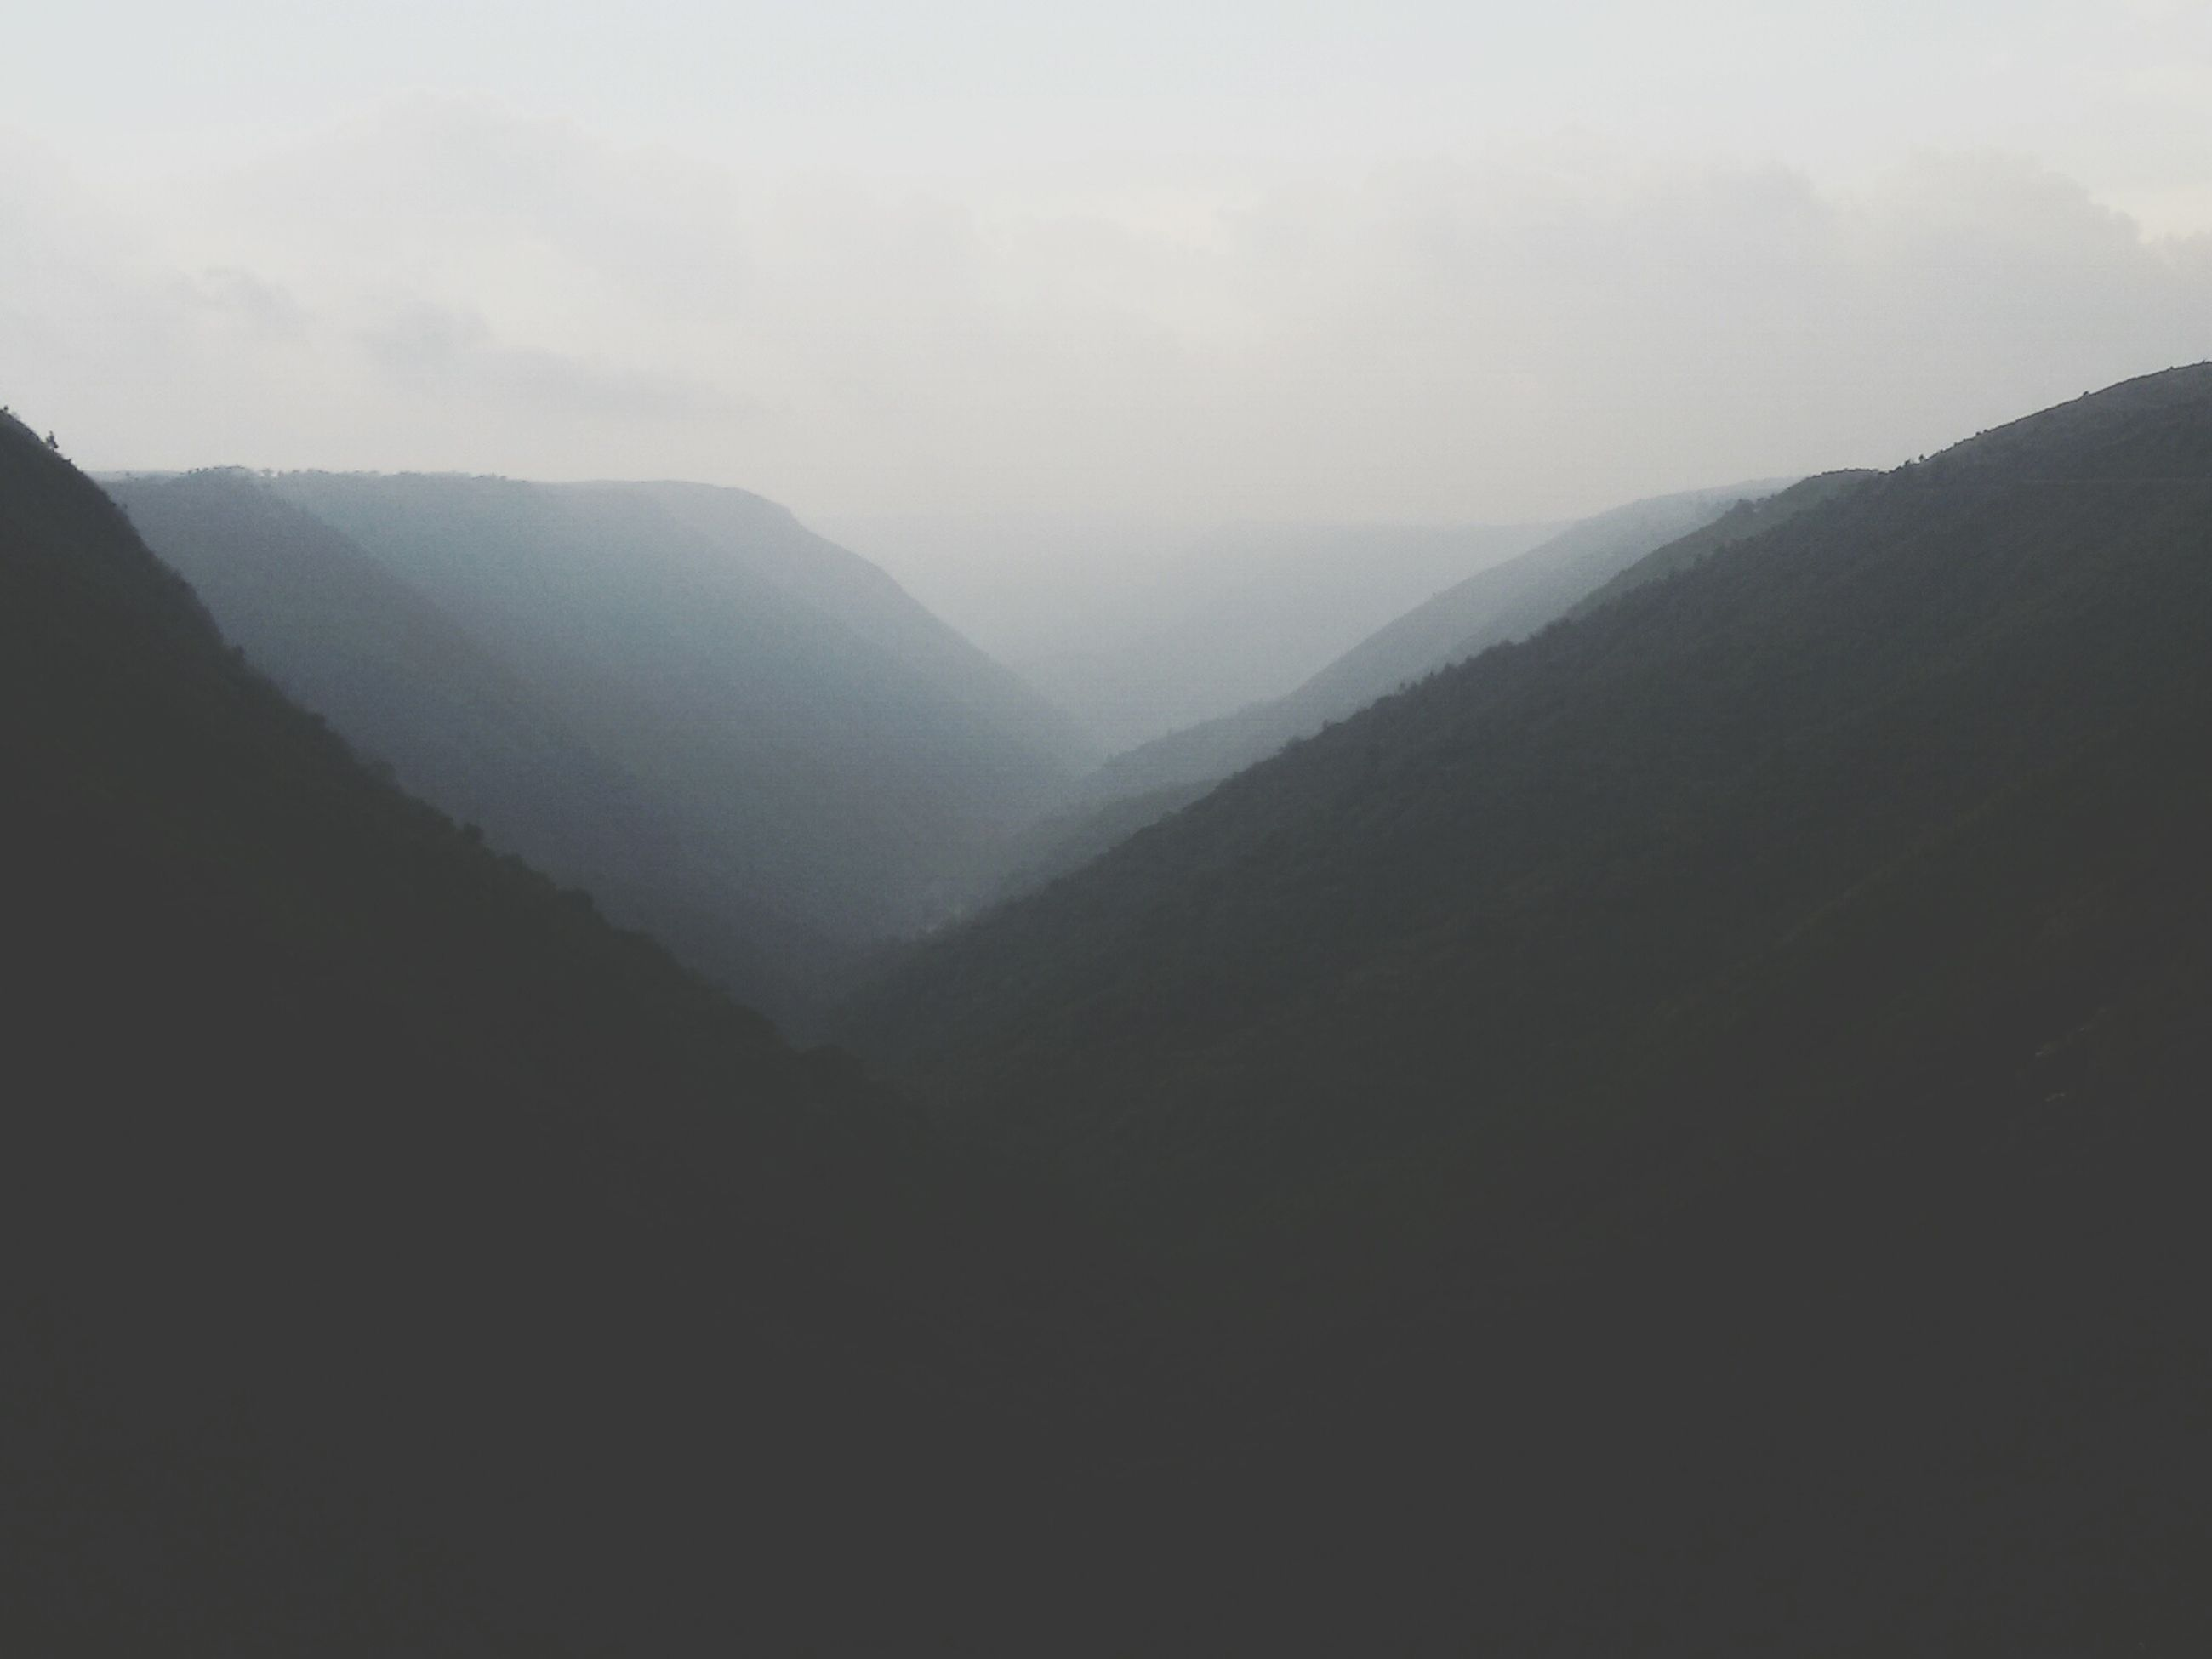 mountain, mountain range, tranquil scene, tranquility, scenics, beauty in nature, fog, landscape, nature, sky, non-urban scene, idyllic, remote, physical geography, majestic, foggy, outdoors, weather, no people, day